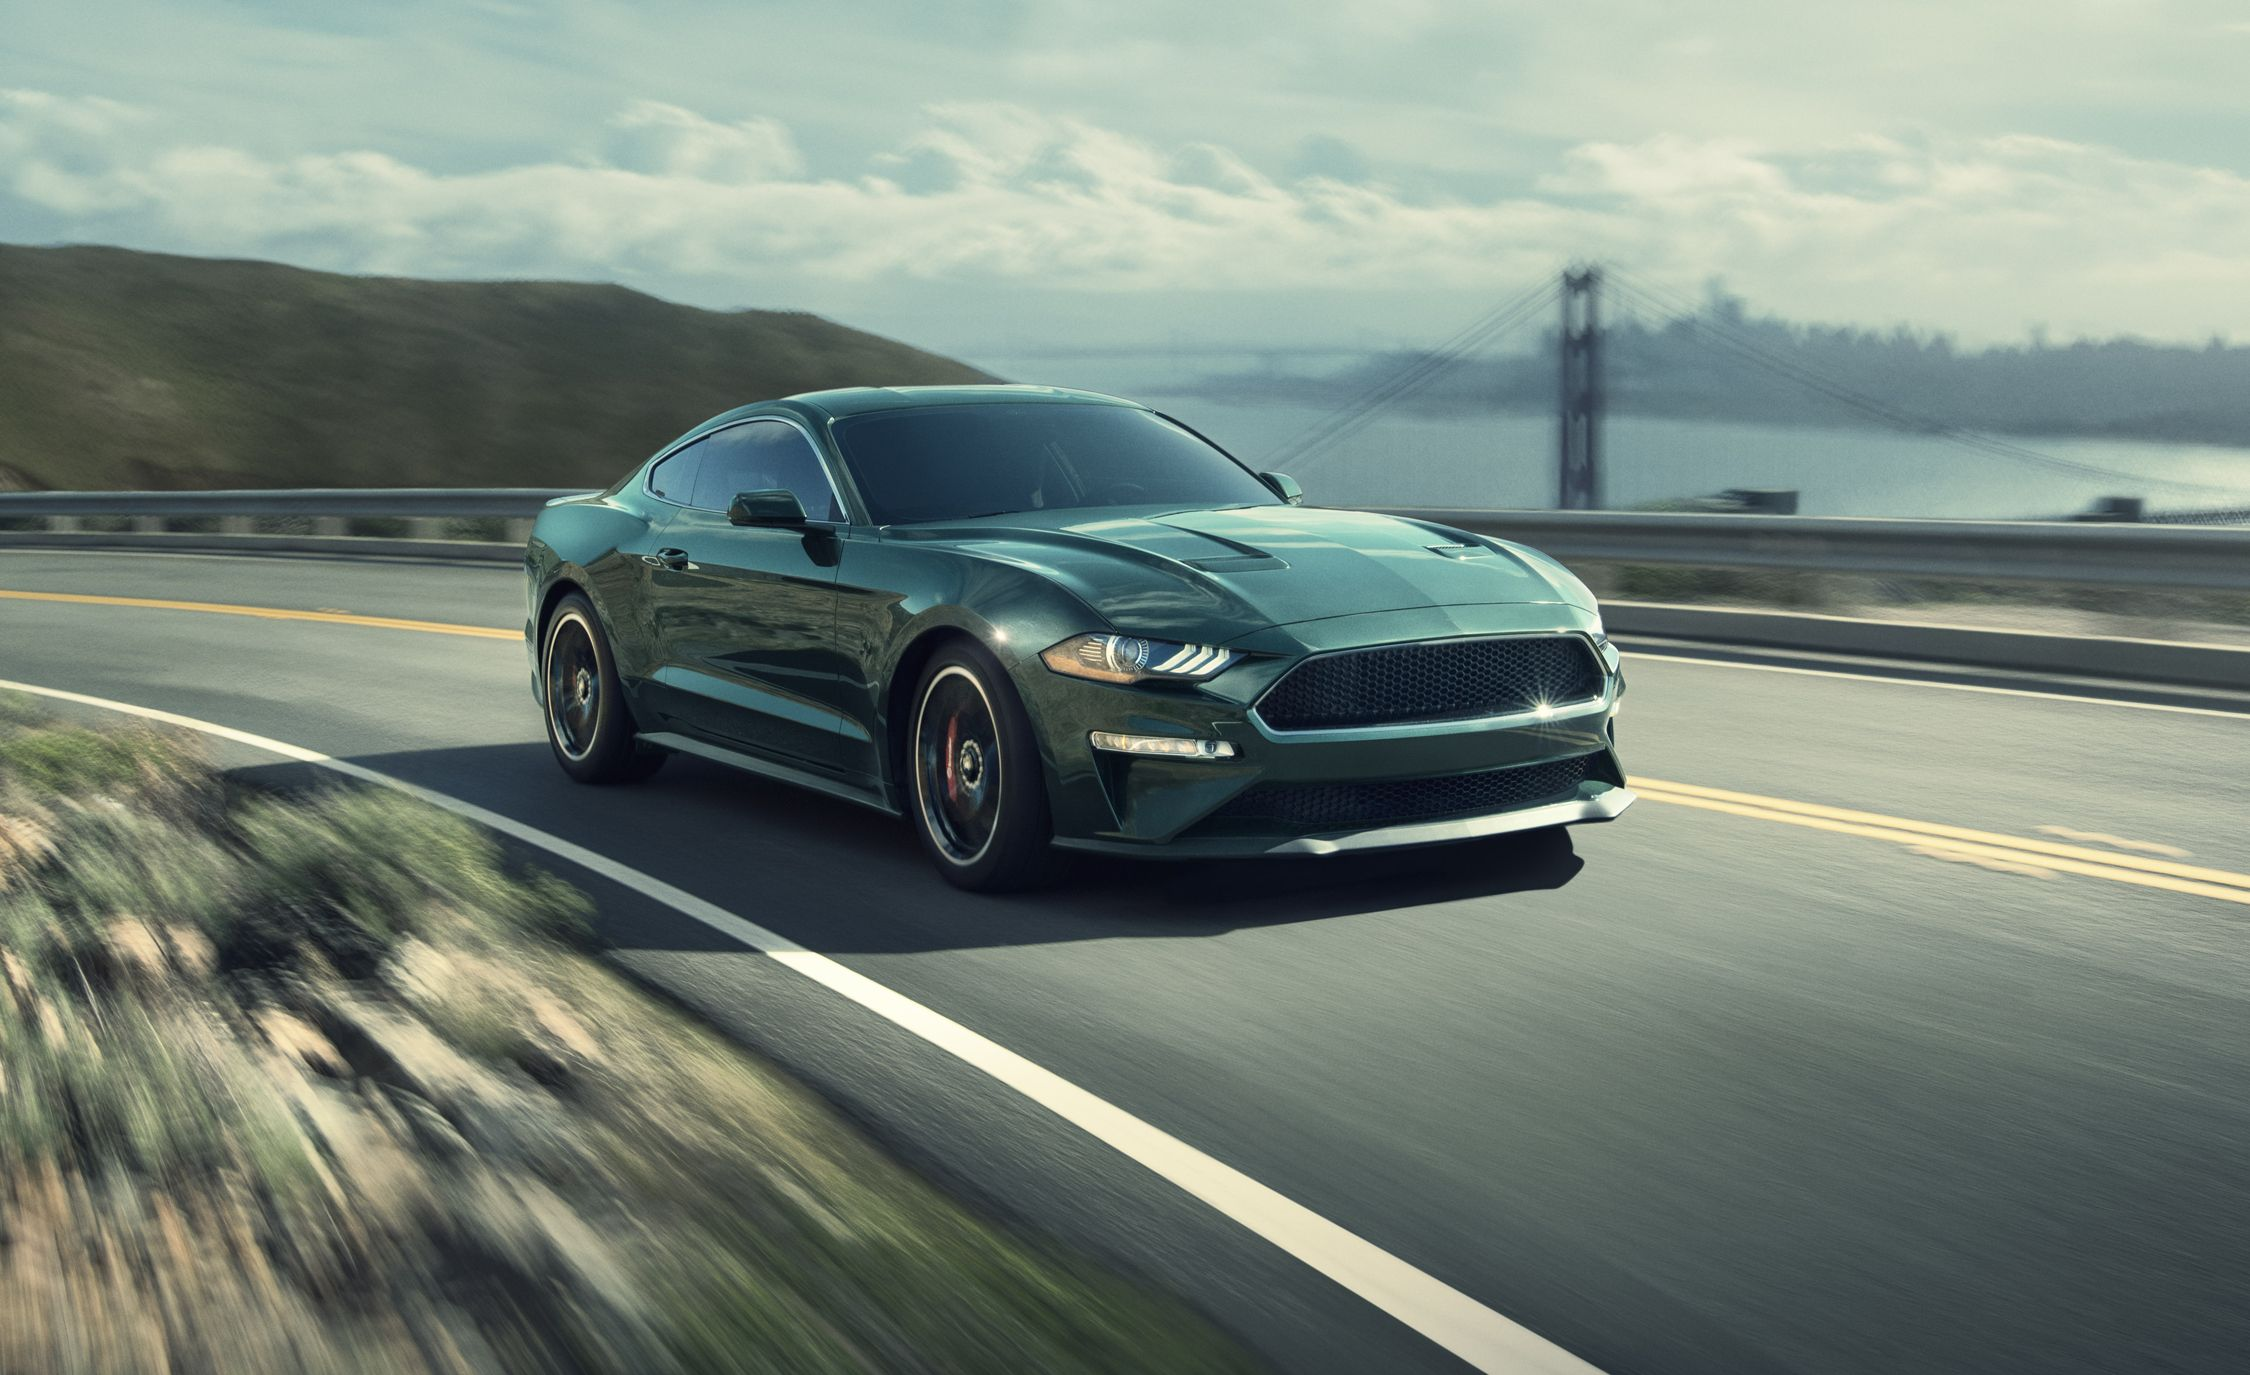 2018 Mustang Gt Review >> 2019 Ford Mustang Bullitt Driven: Riding 480 Loud Horses | Review | Car and Driver